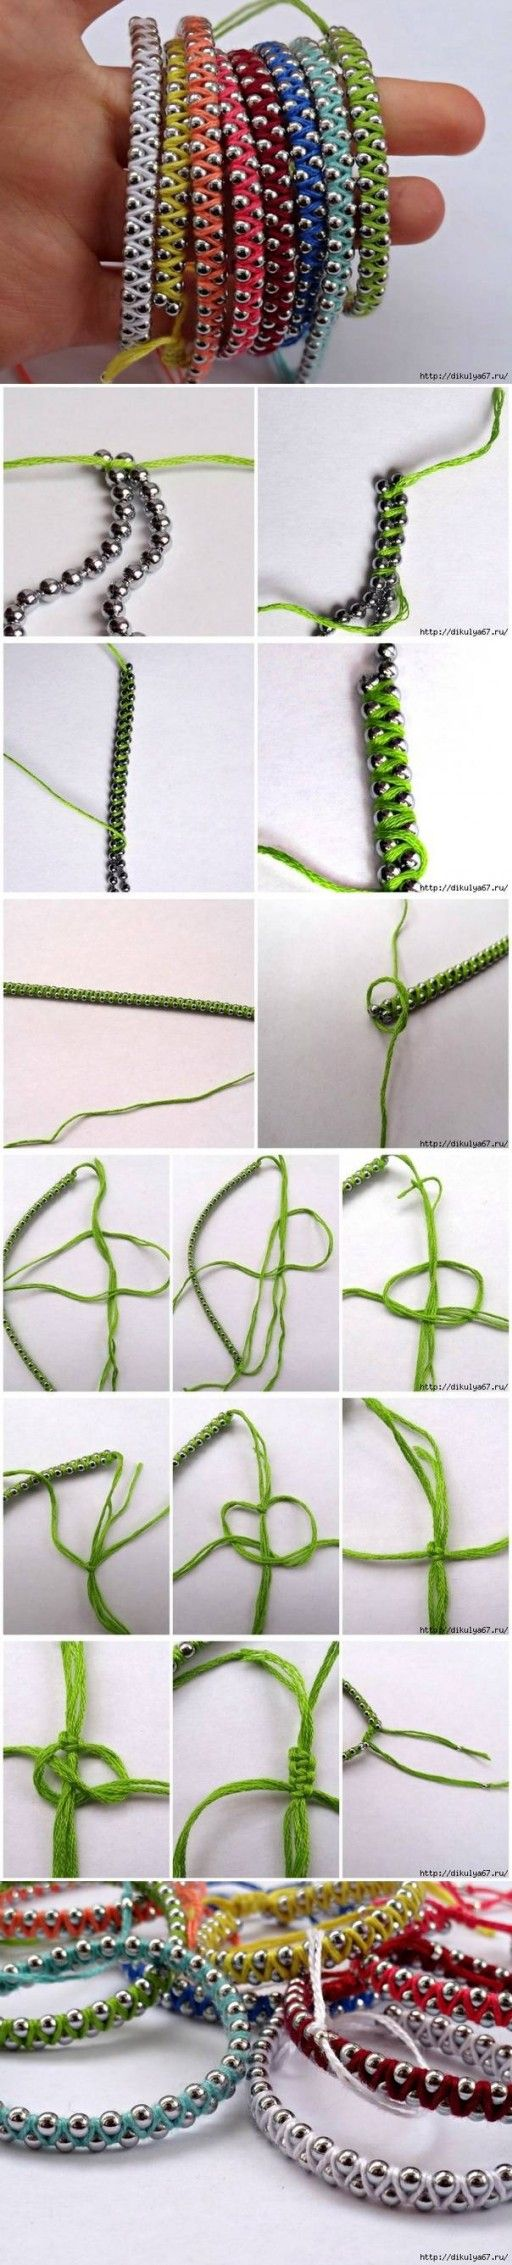 Rainbow Friendship Bracelets step by step DIY tutorial instructions ... I love this! See more awesome stuff at http://craftorganizer.org